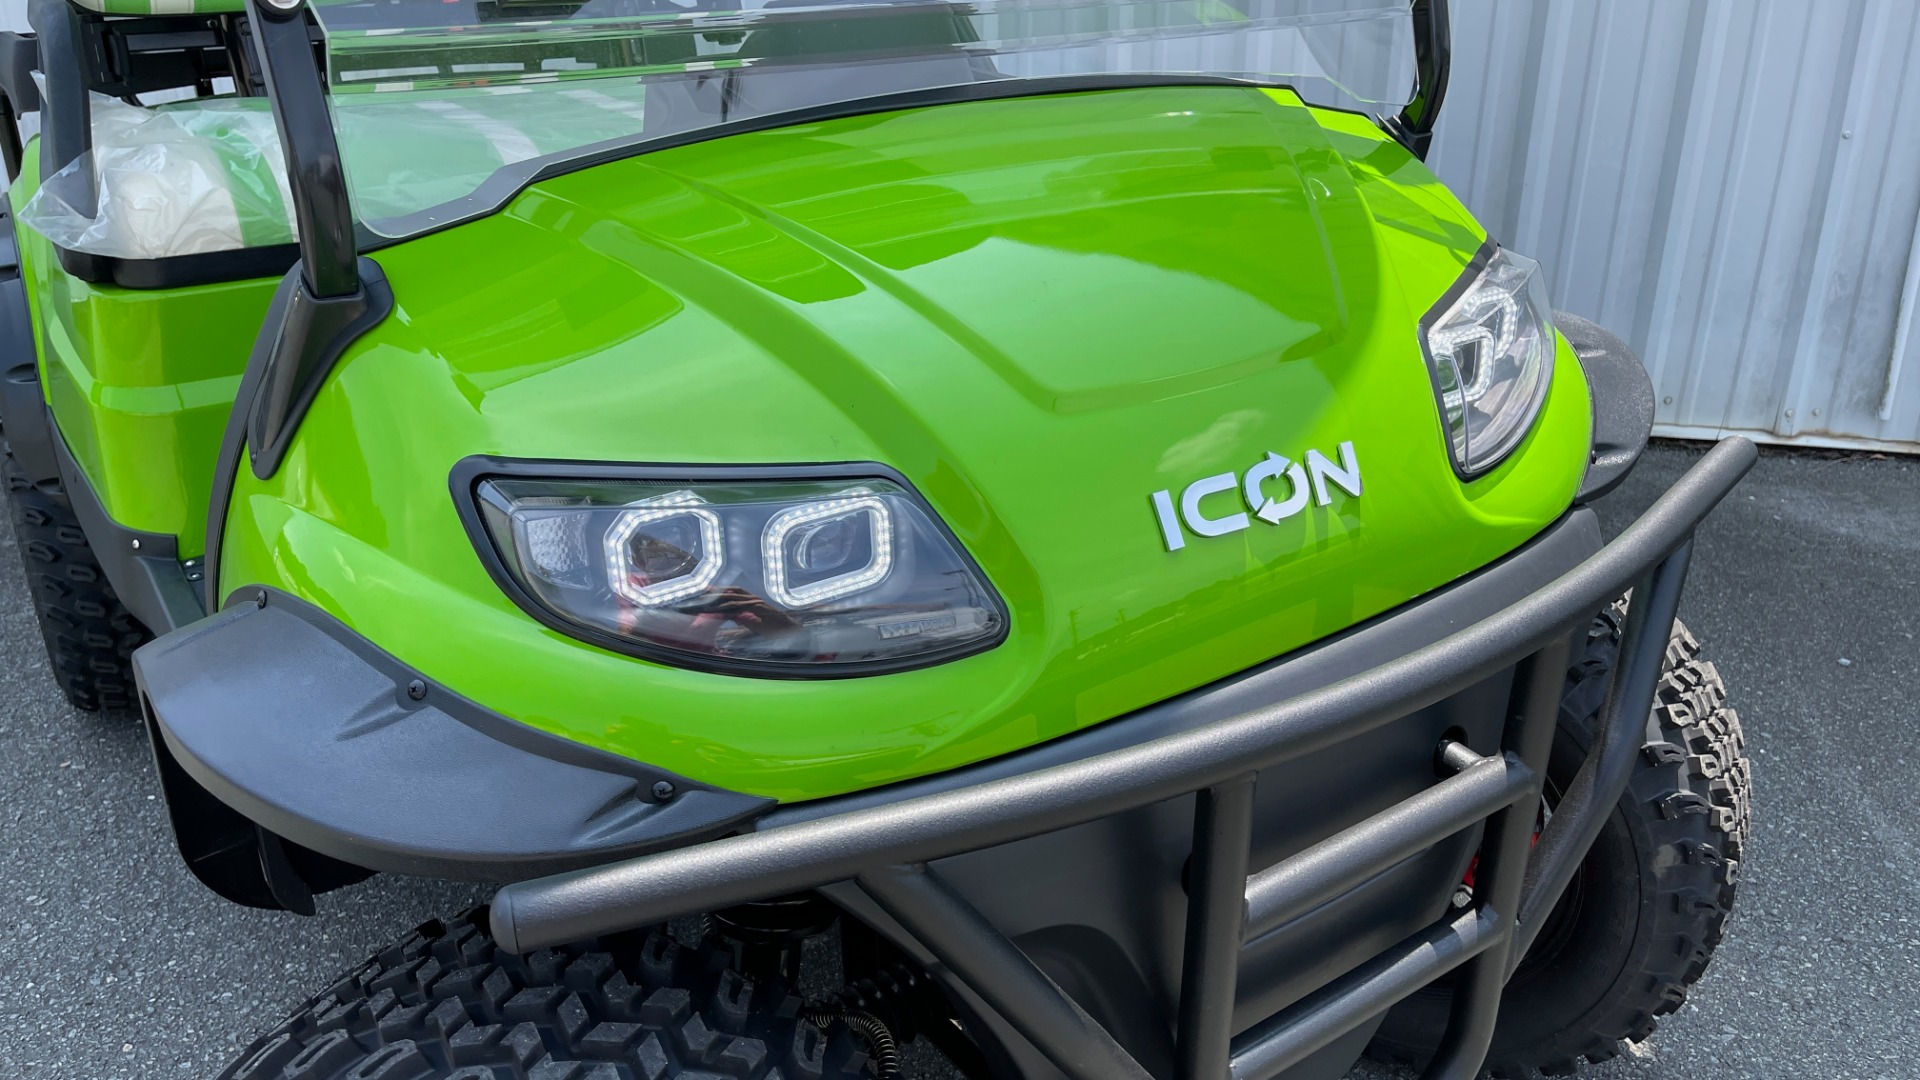 Used 2021 ICON i40L LIFTED ELECTRIC CAR / 4-PASSENGER GOLF CART / 25MPH / NEW / 1-MILE for sale $9,499 at Formula Imports in Charlotte NC 28227 36